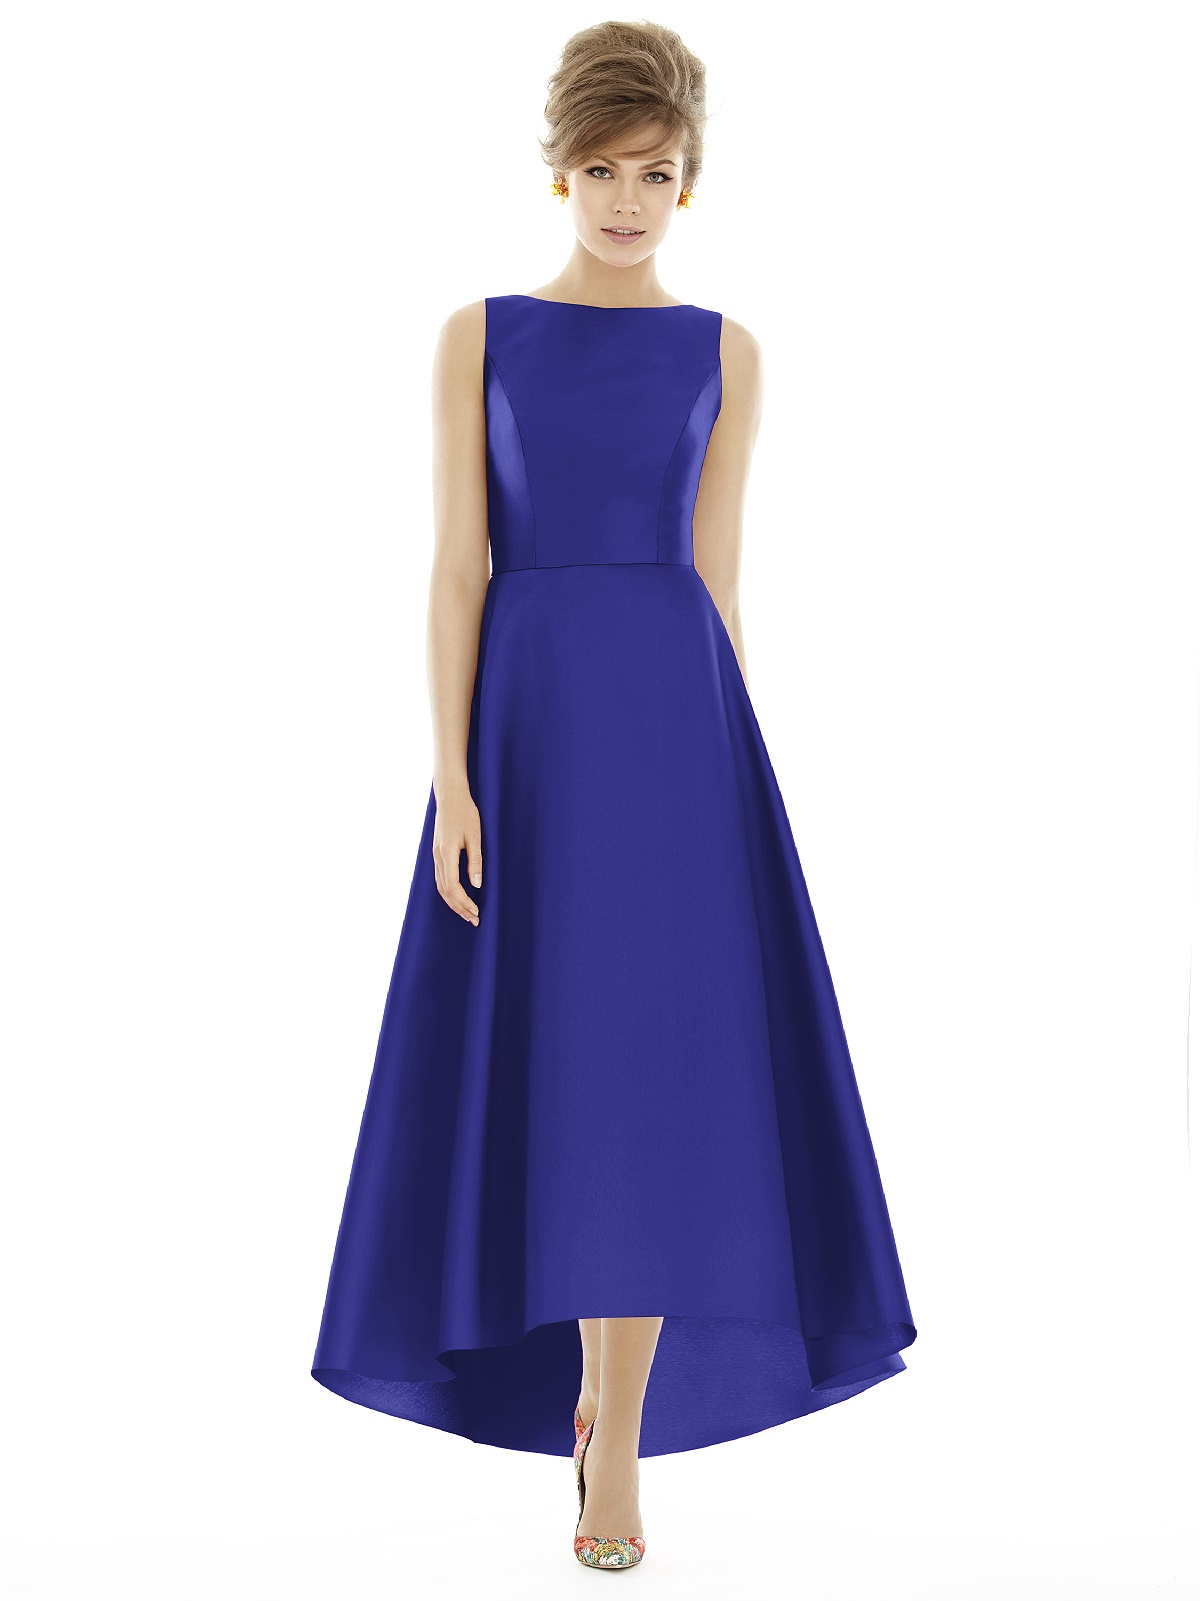 Alfred sung bridesmaid dressesalfred sung dresses d 698the dessy alfred sung bridesmaid dresses alfred sung d698 loading zoom ombrellifo Choice Image